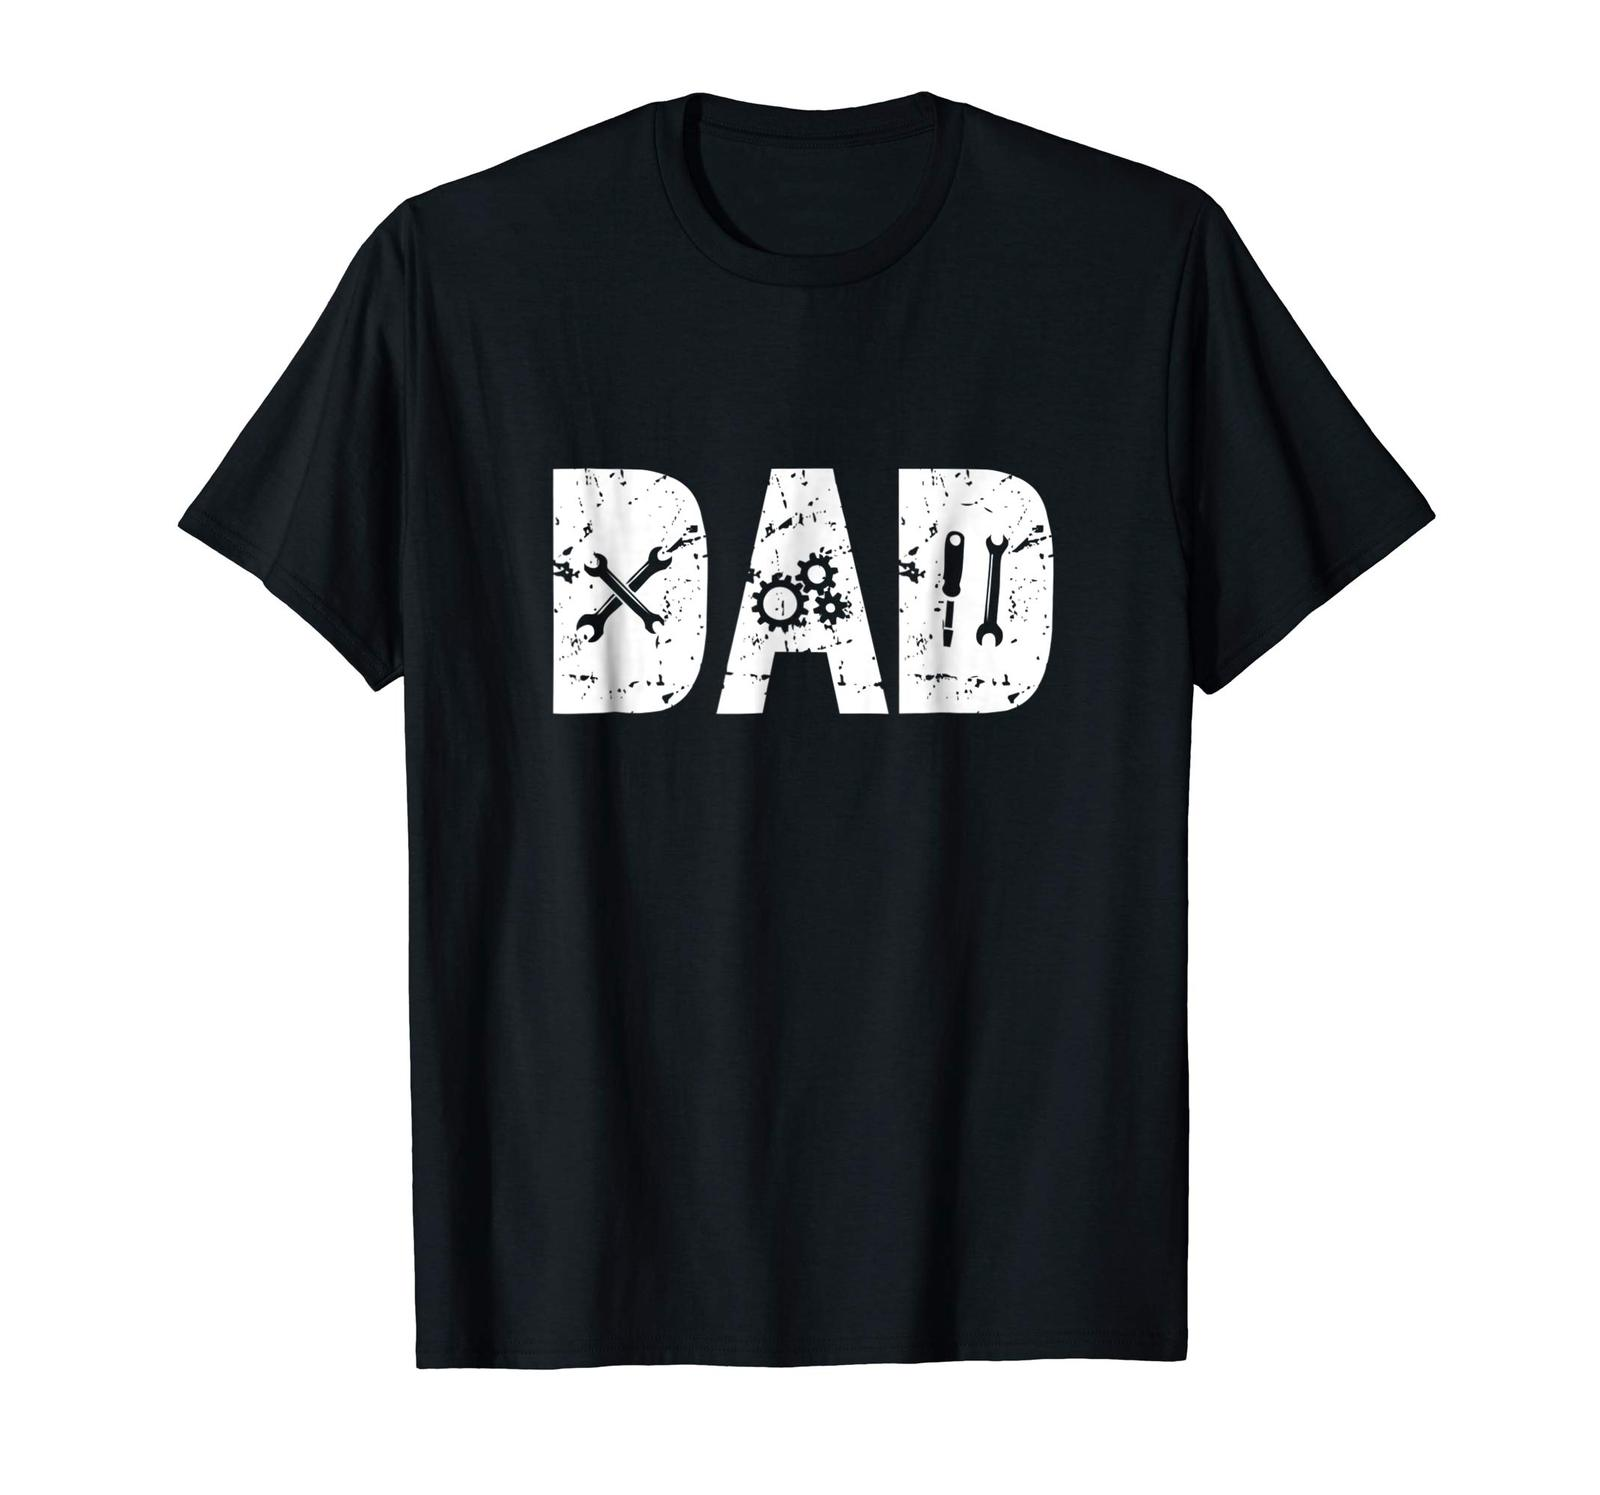 Dad Shirts - Funny Dad Gift Mechanic Shirts for Men Fathers Day 2018 Tee Men image 5